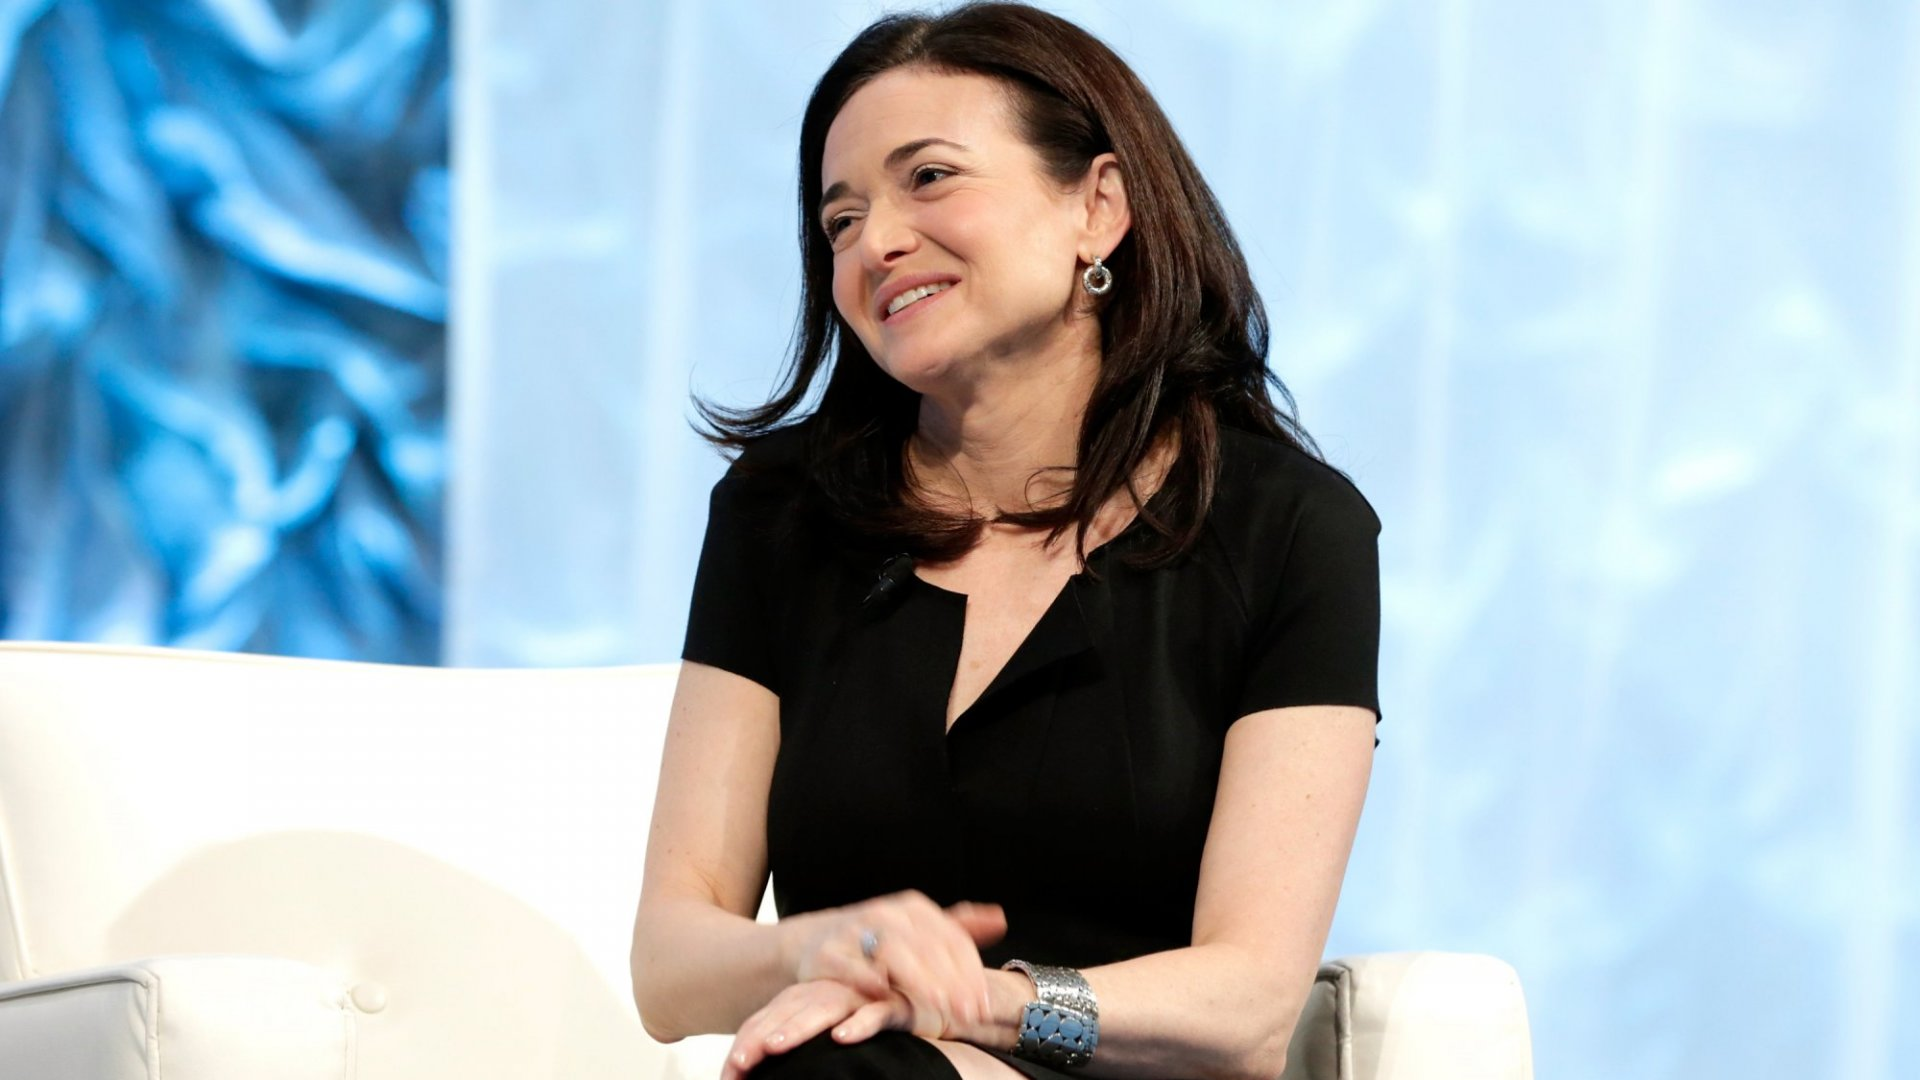 These 11 Billionaires Are the Richest Women in Tech